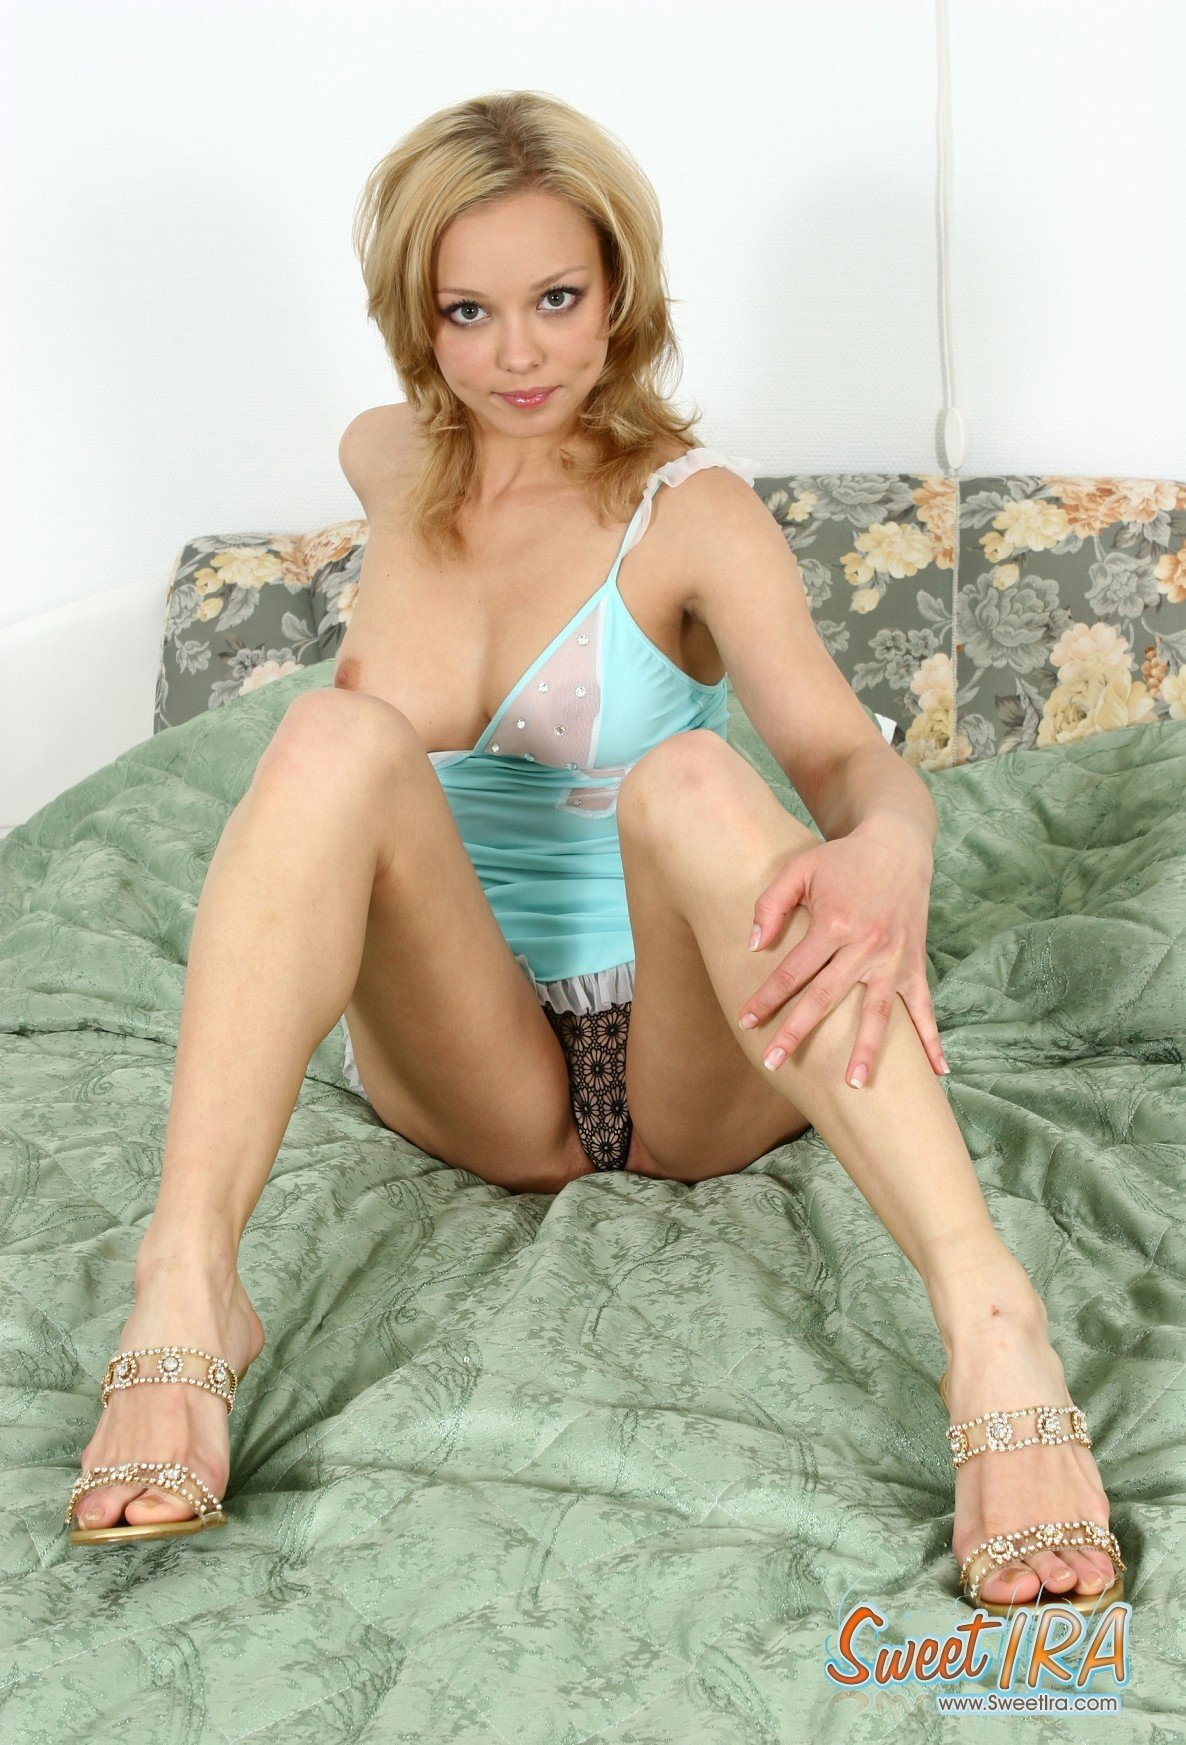 Sexy nude blonde models #10